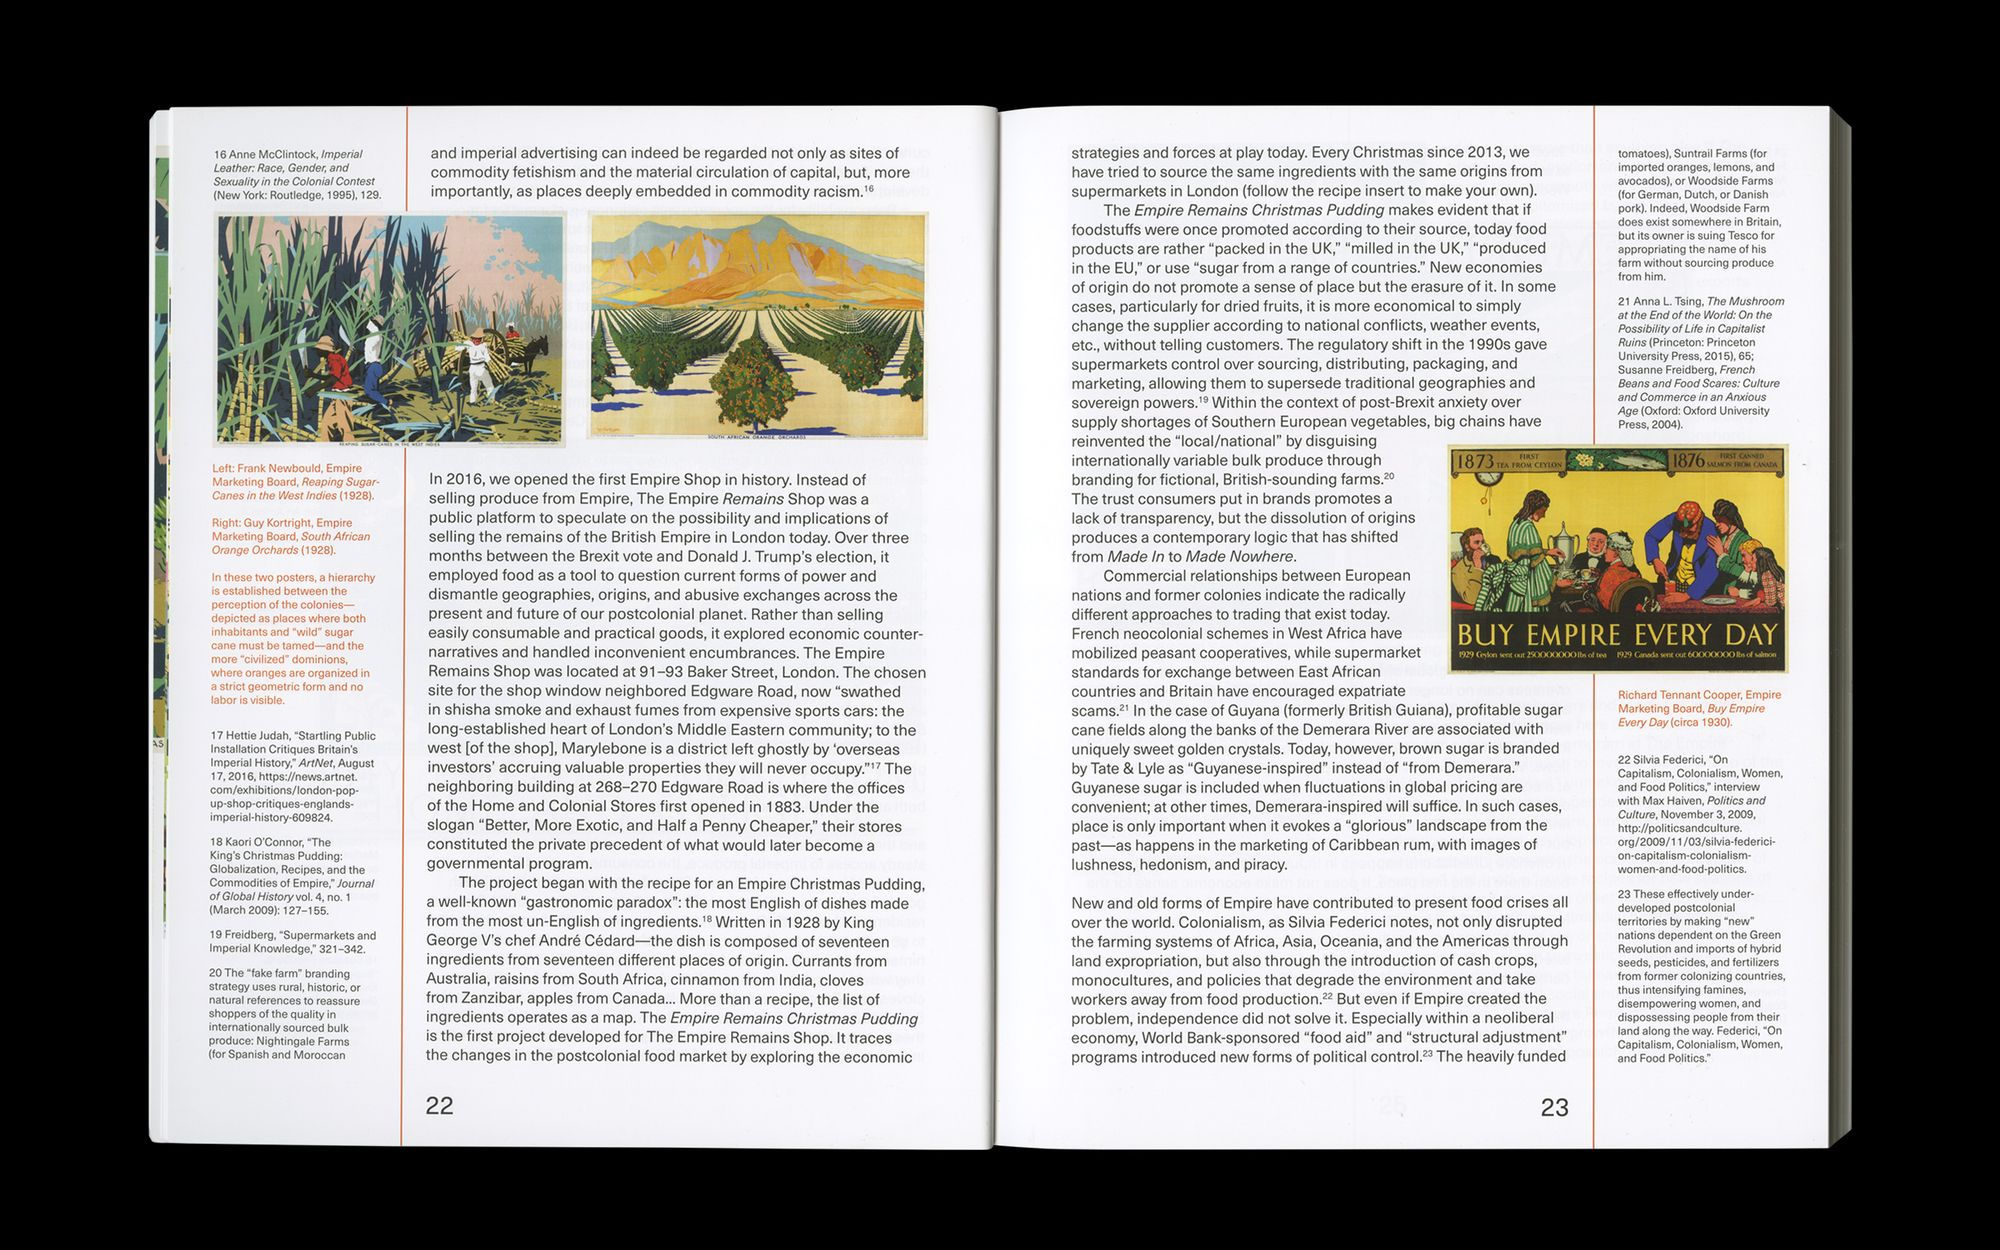 Scan of internal spread of The Empire Remains Shop publication